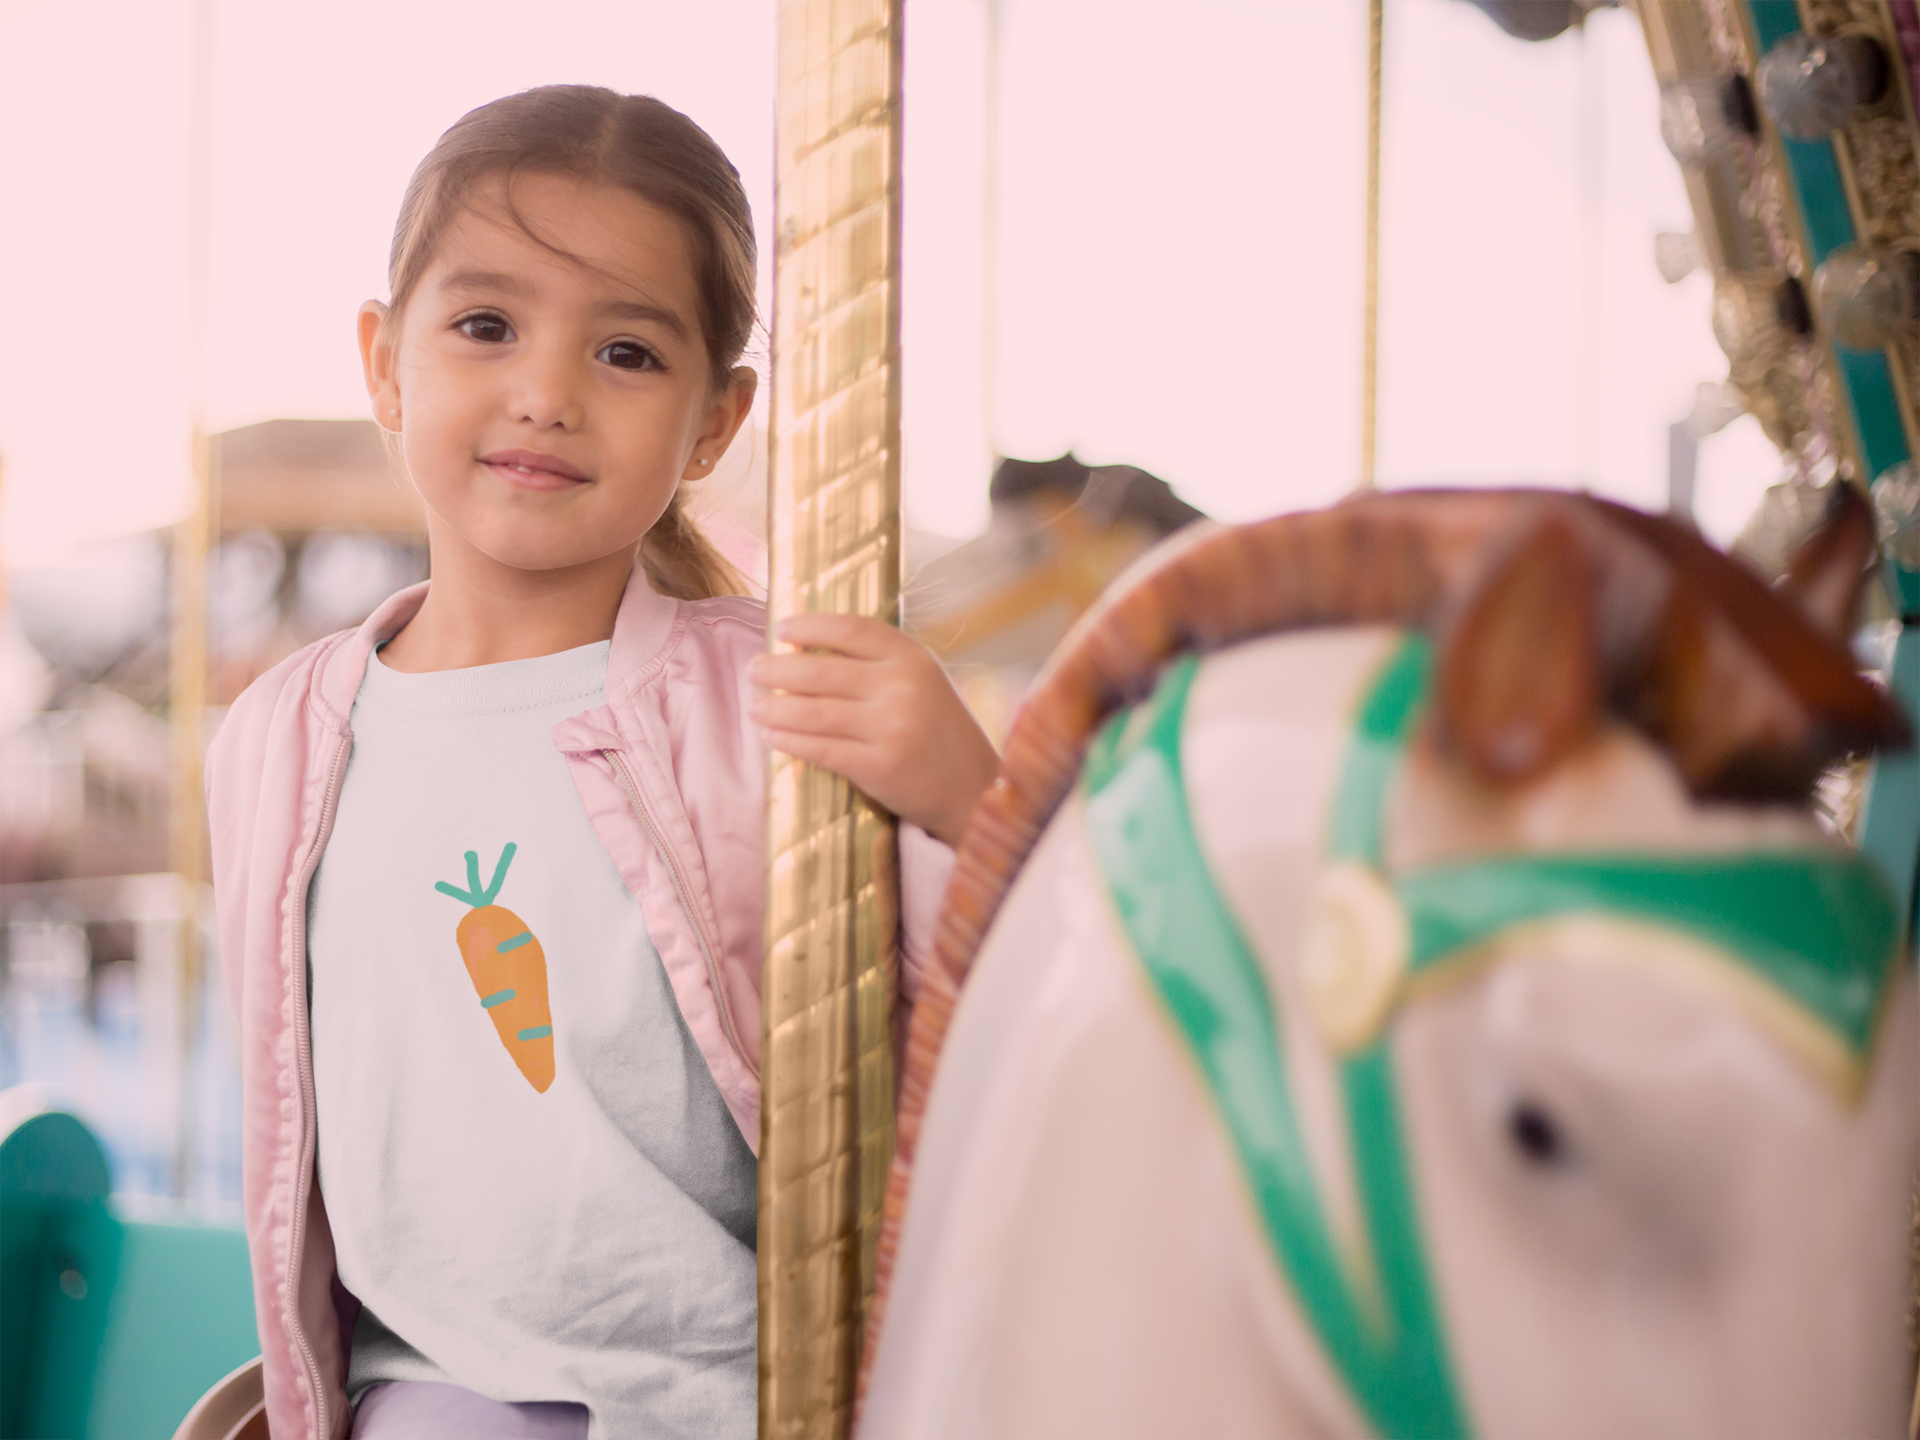 mockup-of-a-little-girl-riding-a-carousel-horse-wearing-a-tshirt-and-a-pink-jacket-22527.png